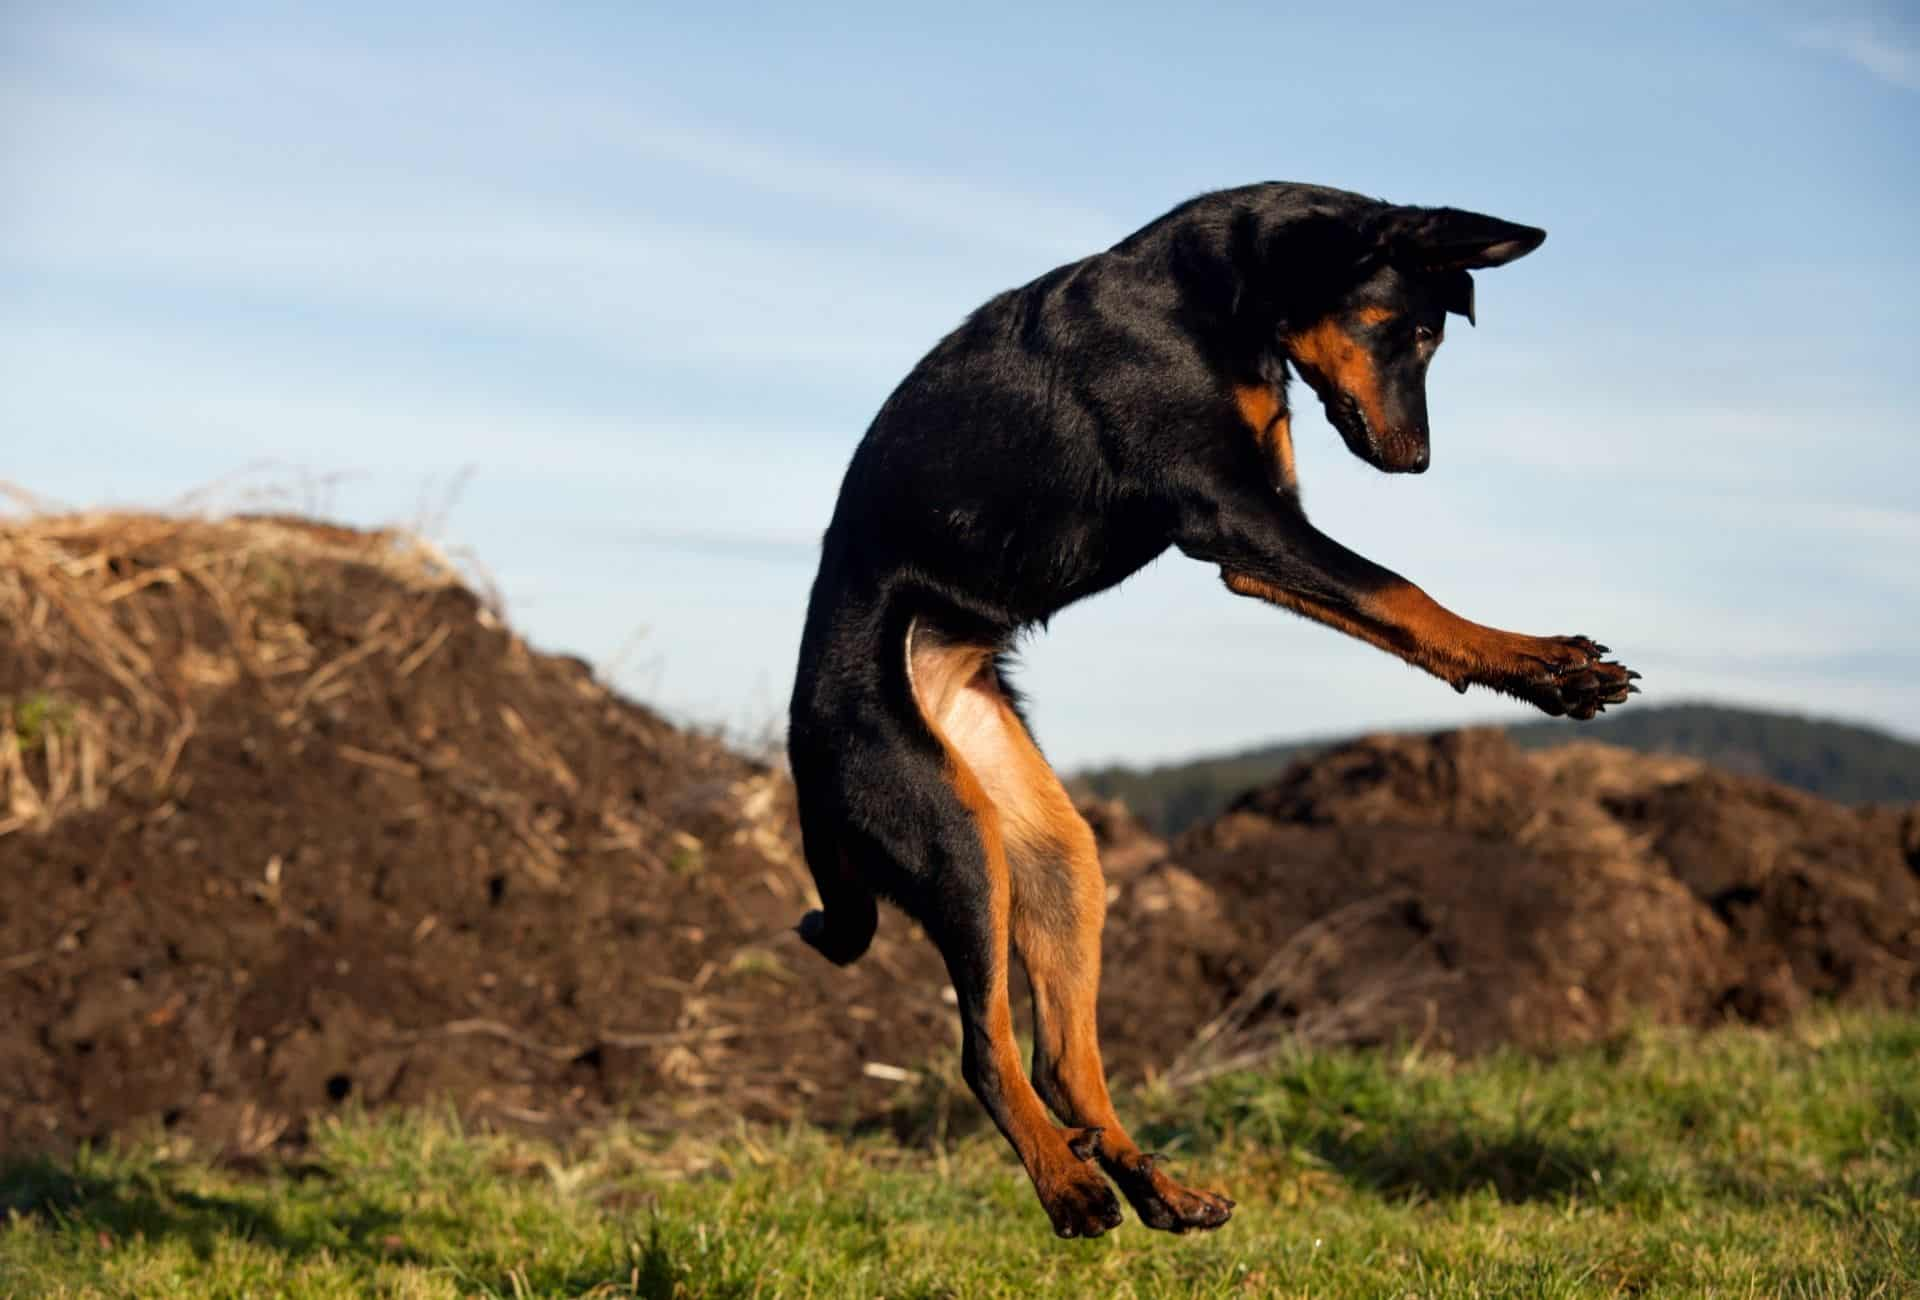 Beauceron jumping high in the air.